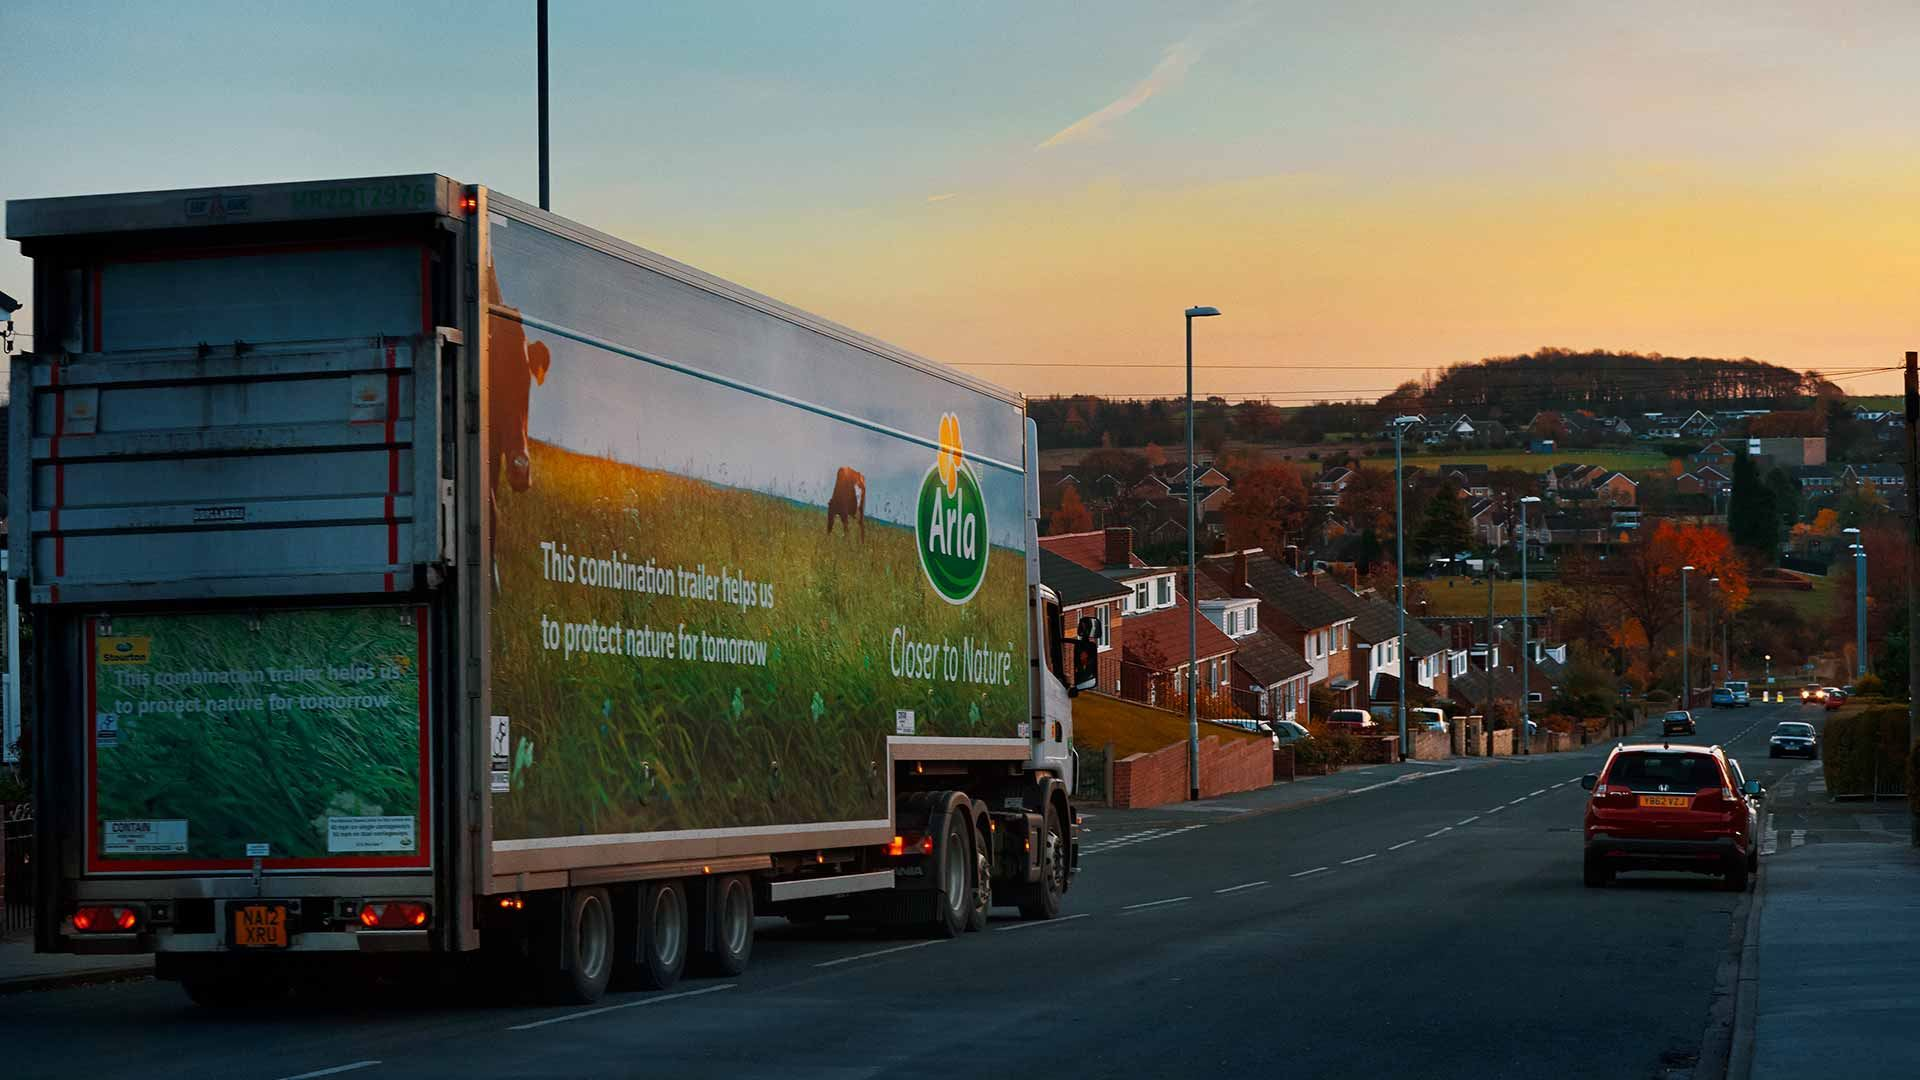 Arla trailer truck driving through a residential area at sunset